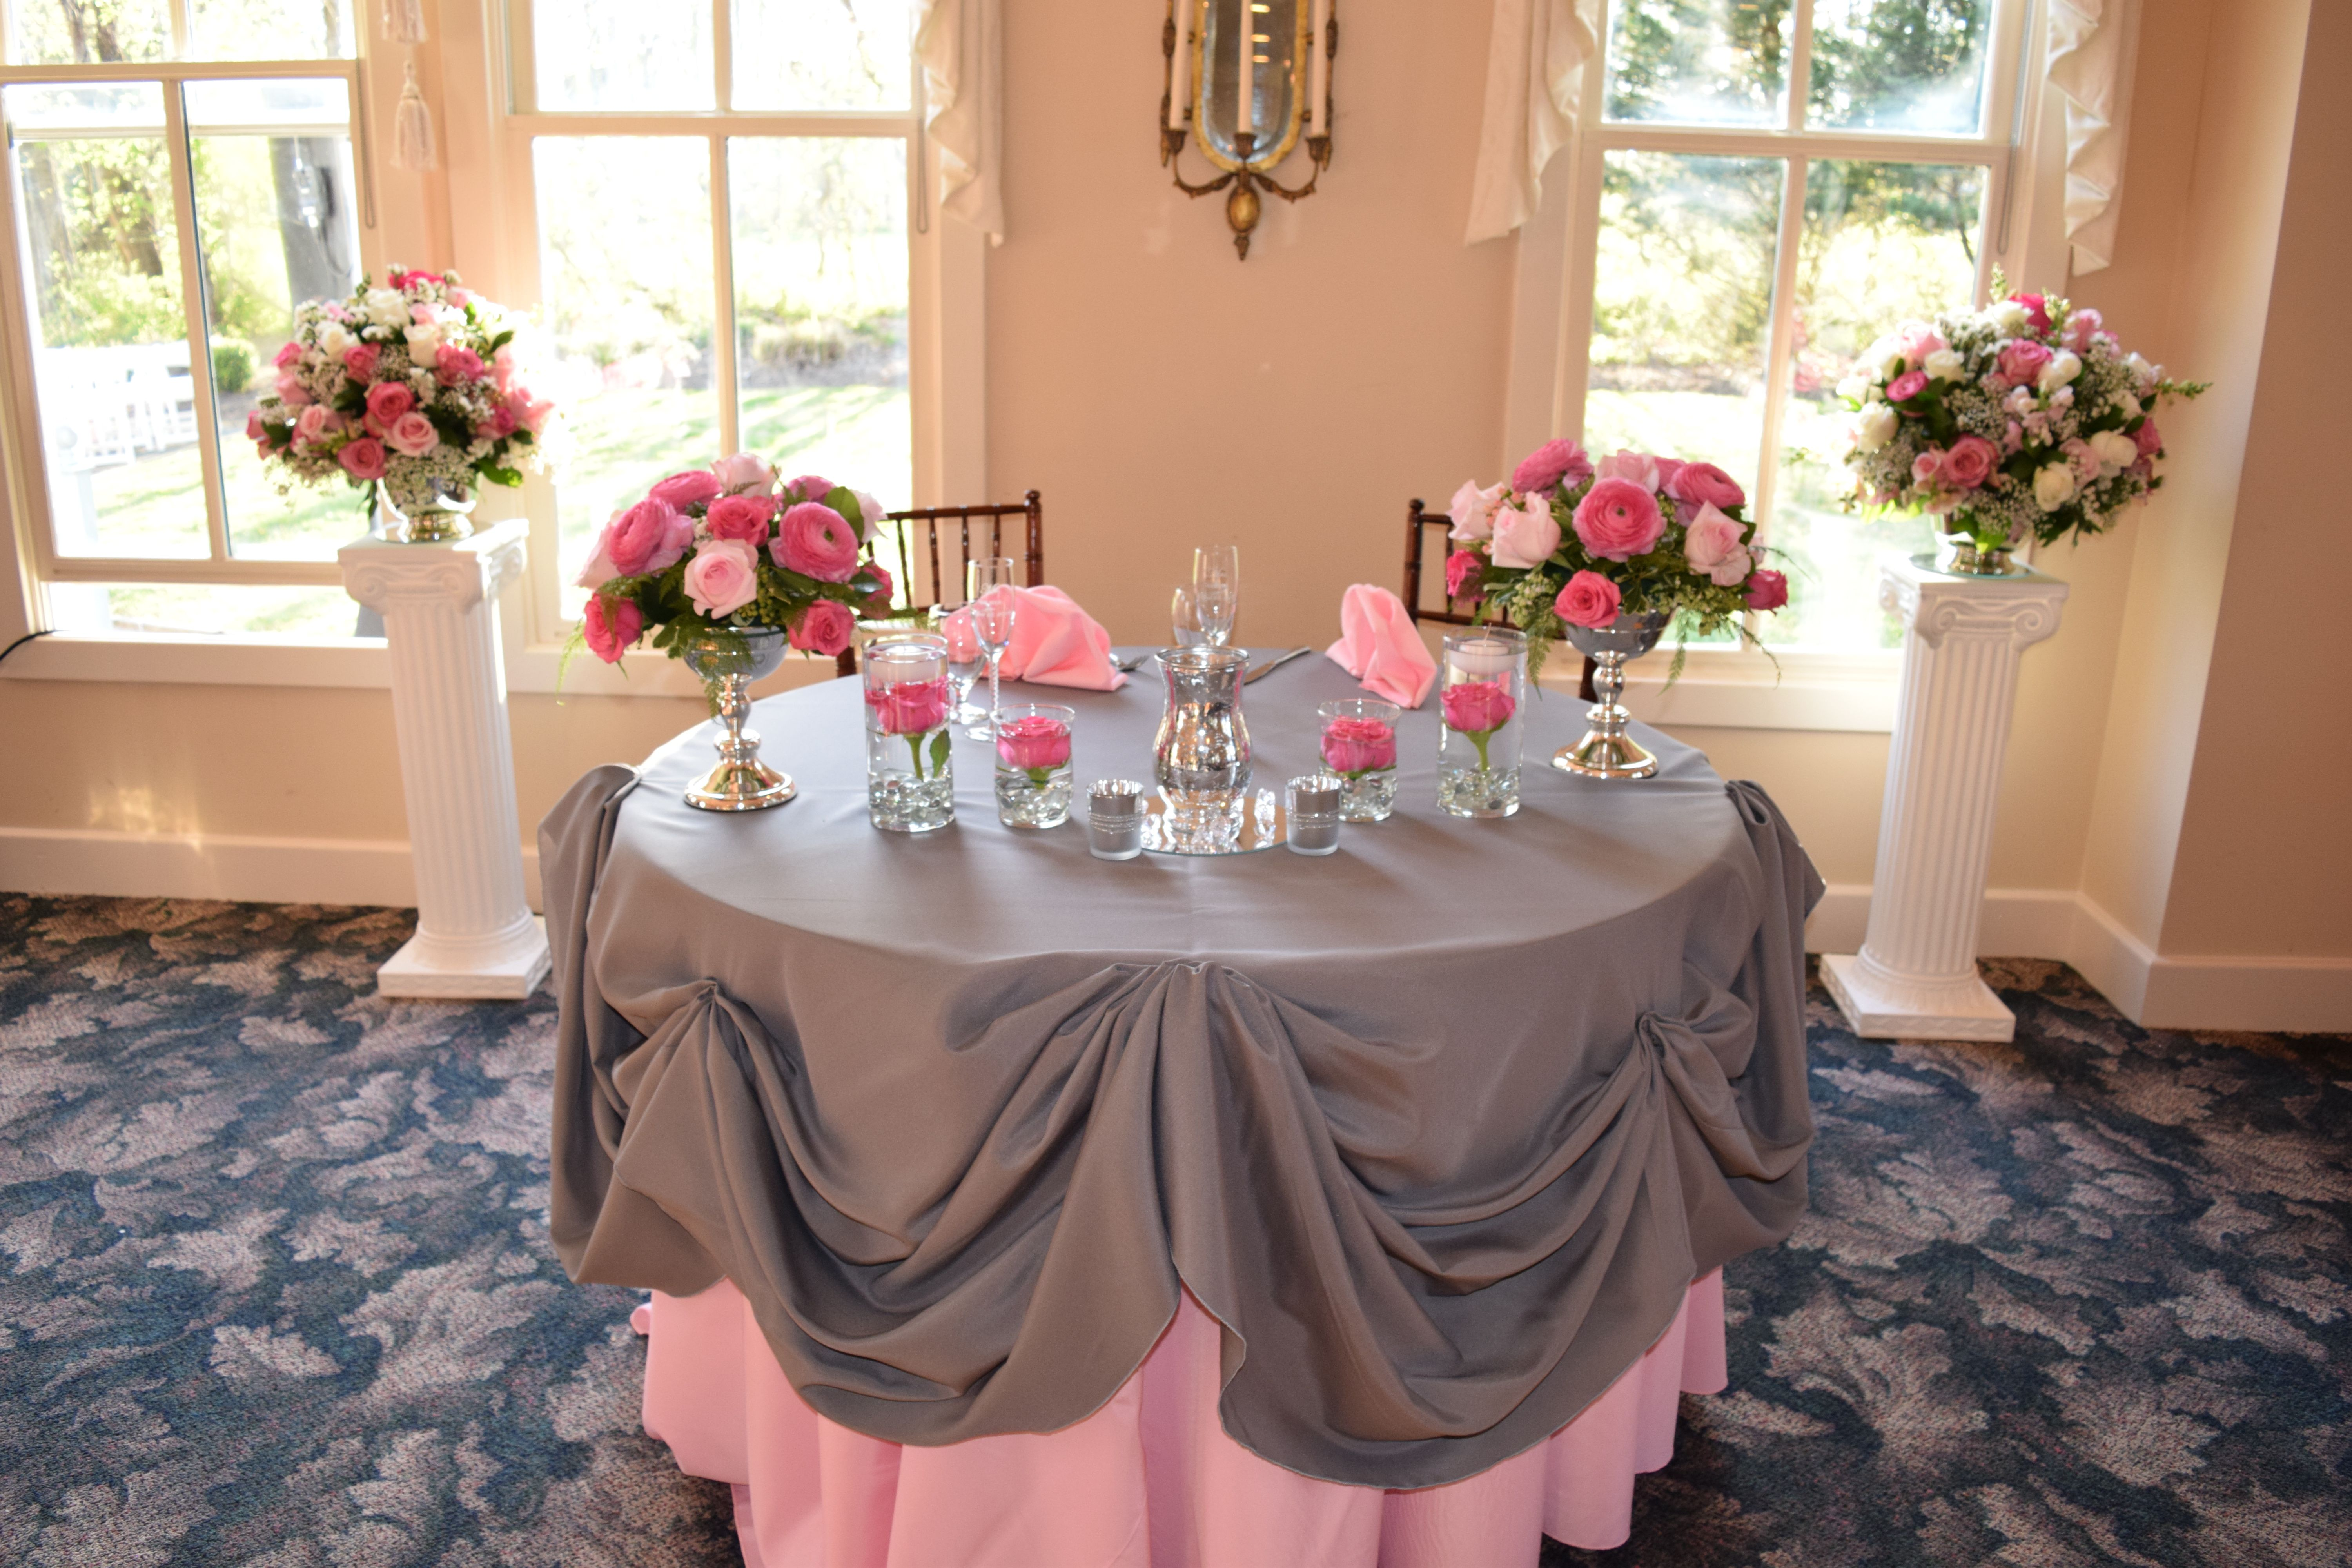 Historic Savage Mill Manor House Wedding Reception Sweetheart Table3 Putting On The Ritz